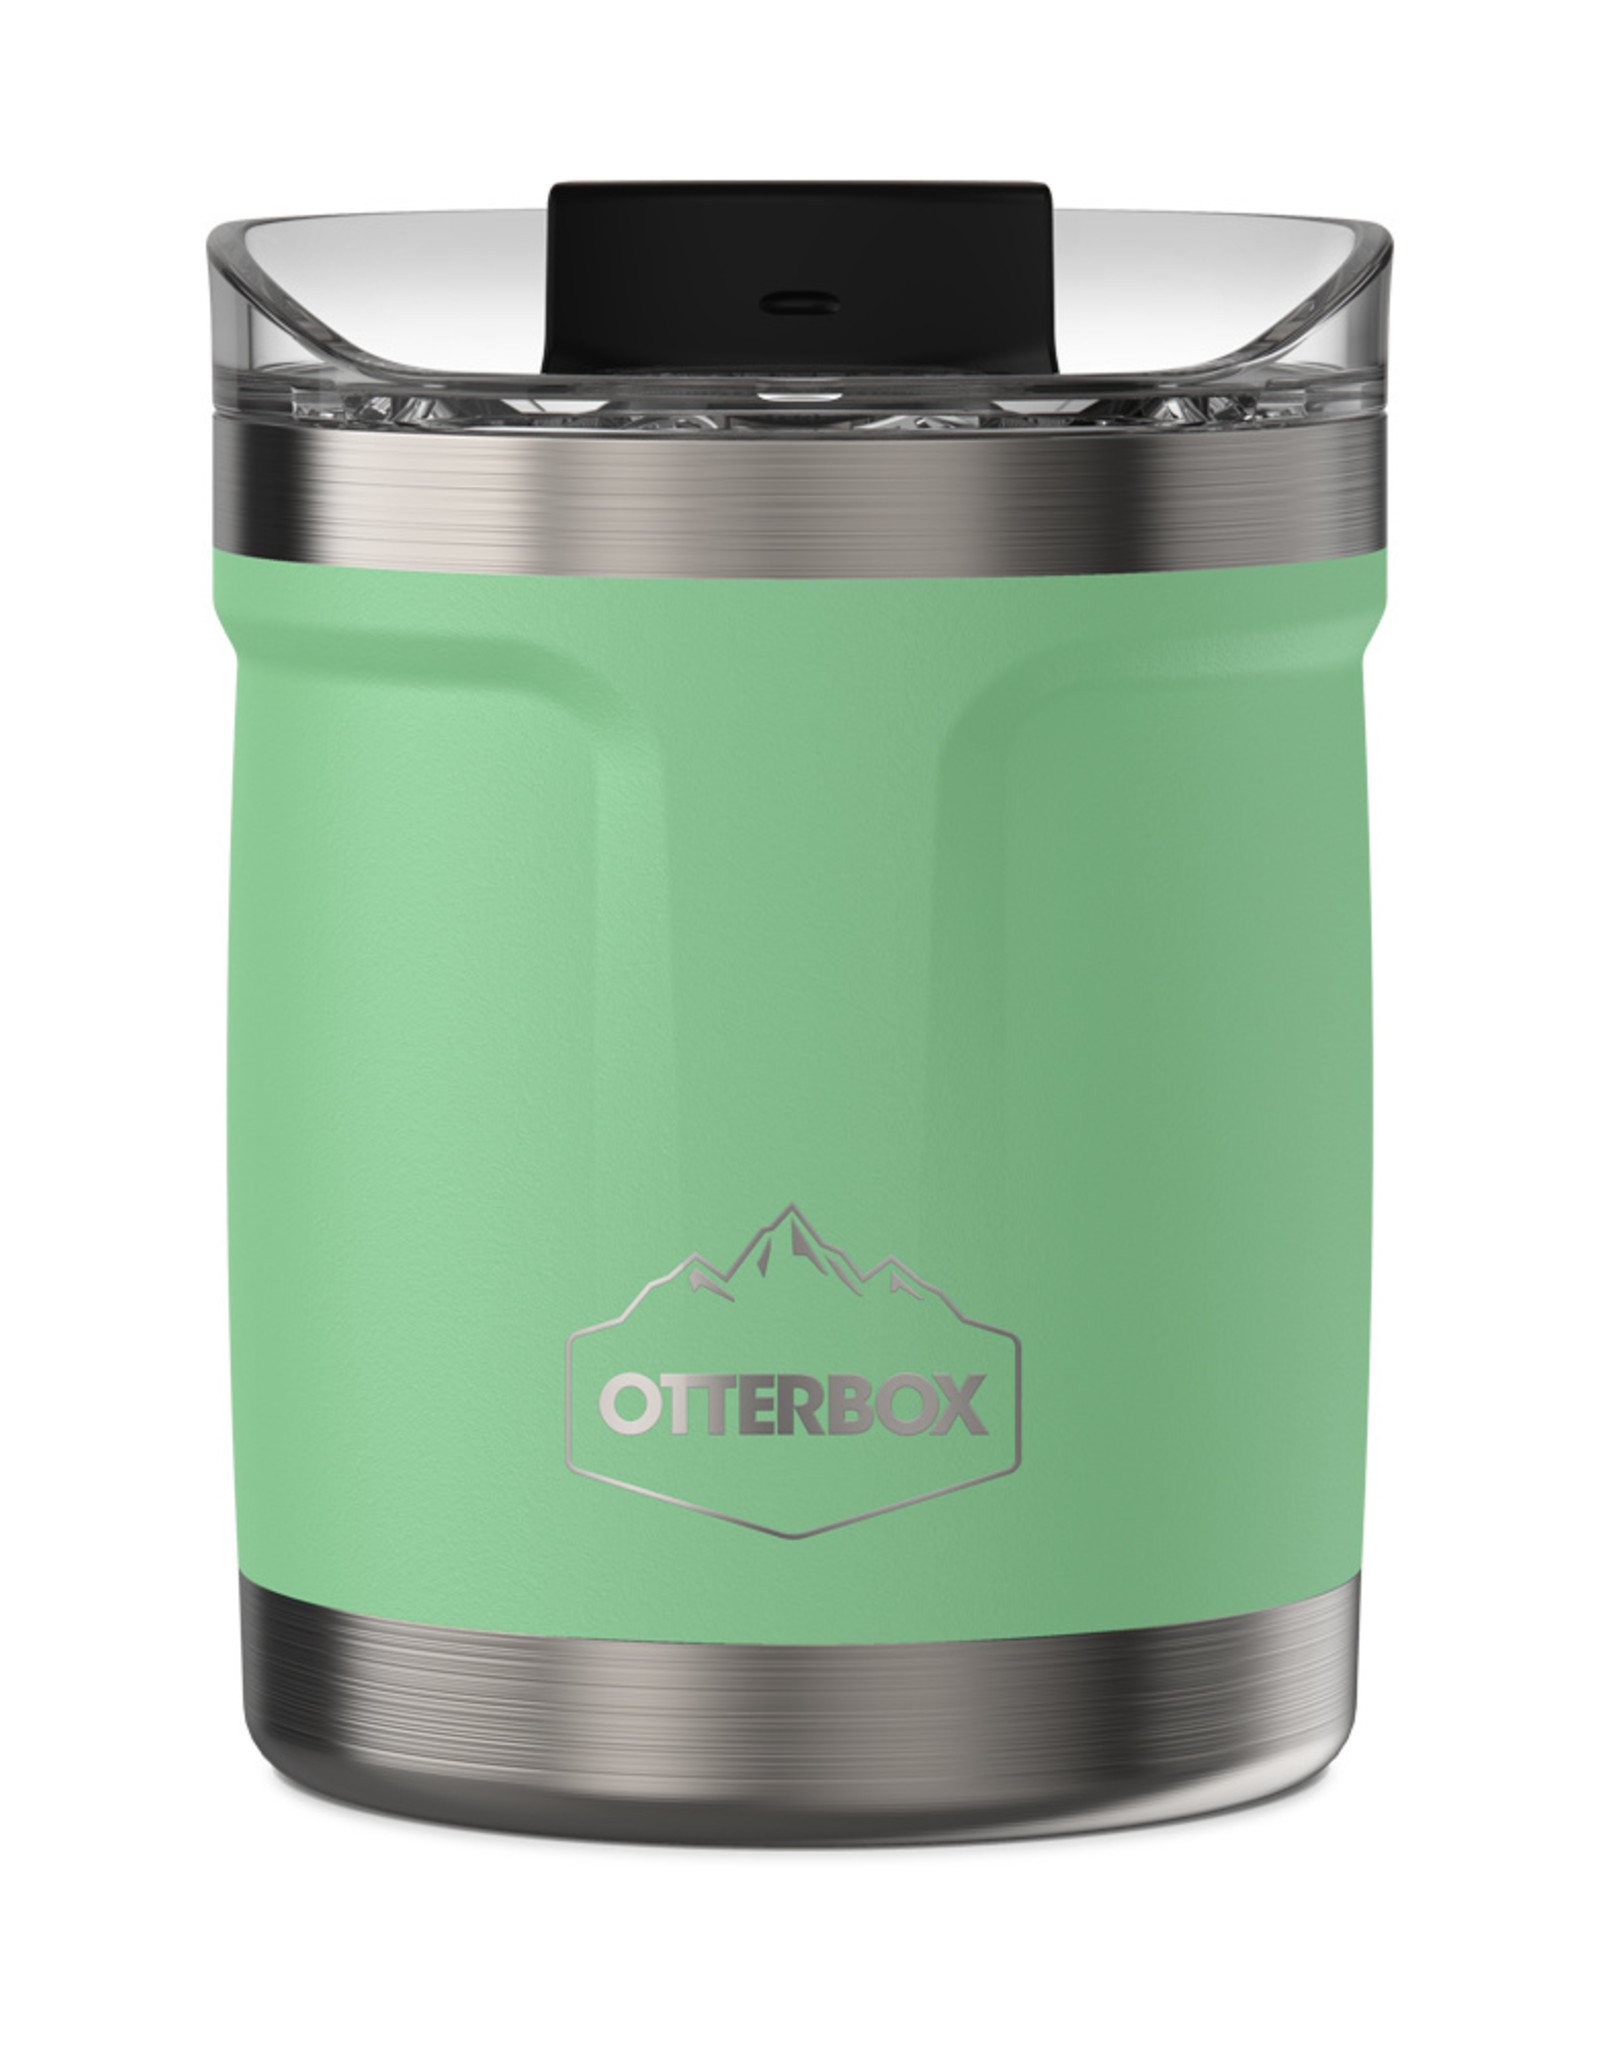 Otterbox Otterbox - Elevation Tumbler with Closed Lid 10 OZ Mint Spring (Stainless Steel/Green Ash) 102-0089